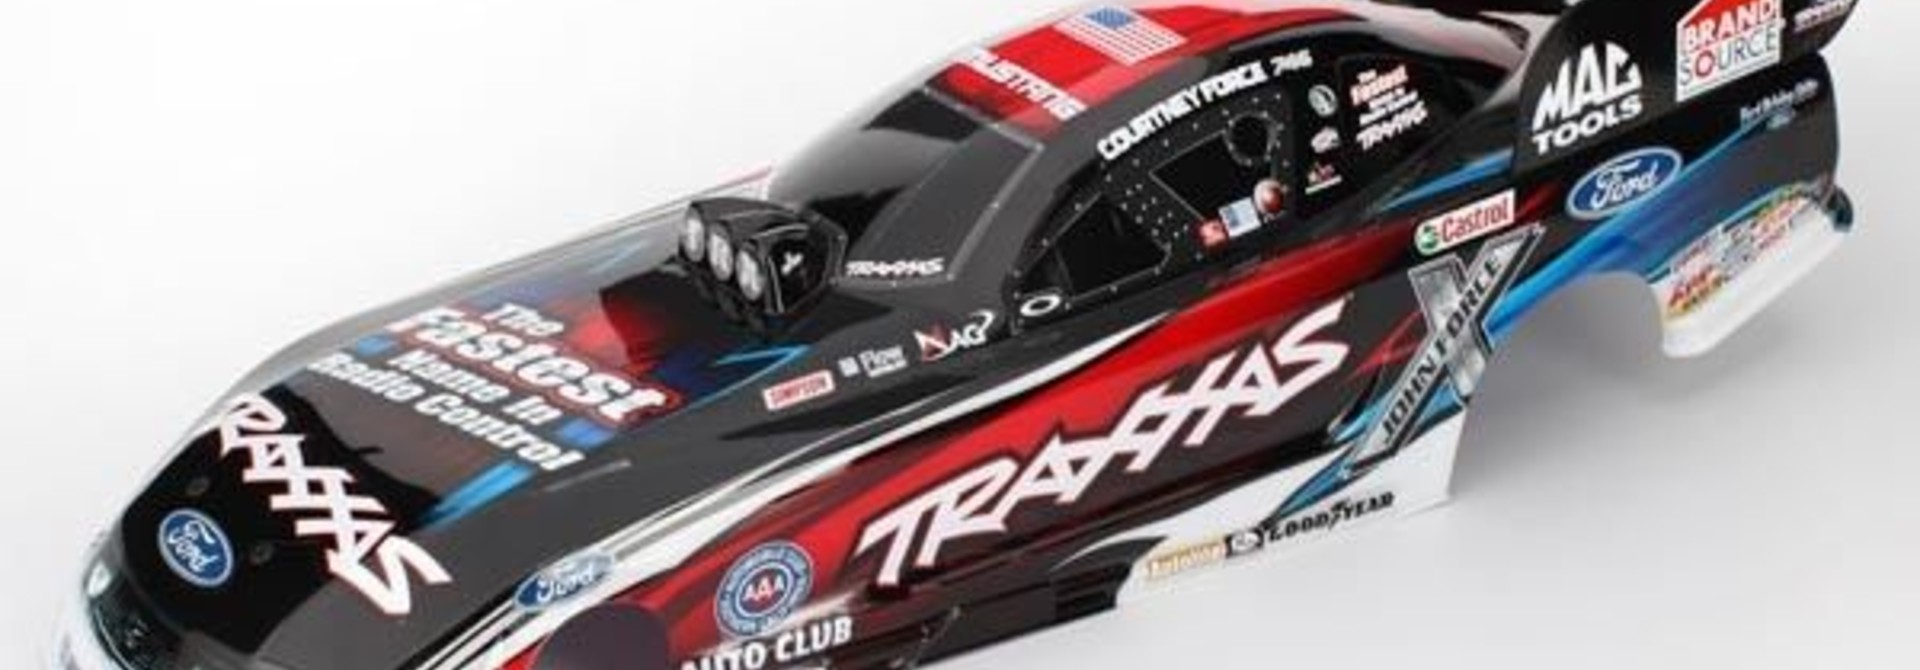 Body, Ford Mustang, Courtney Force (painted, decals applied), TRX6911X